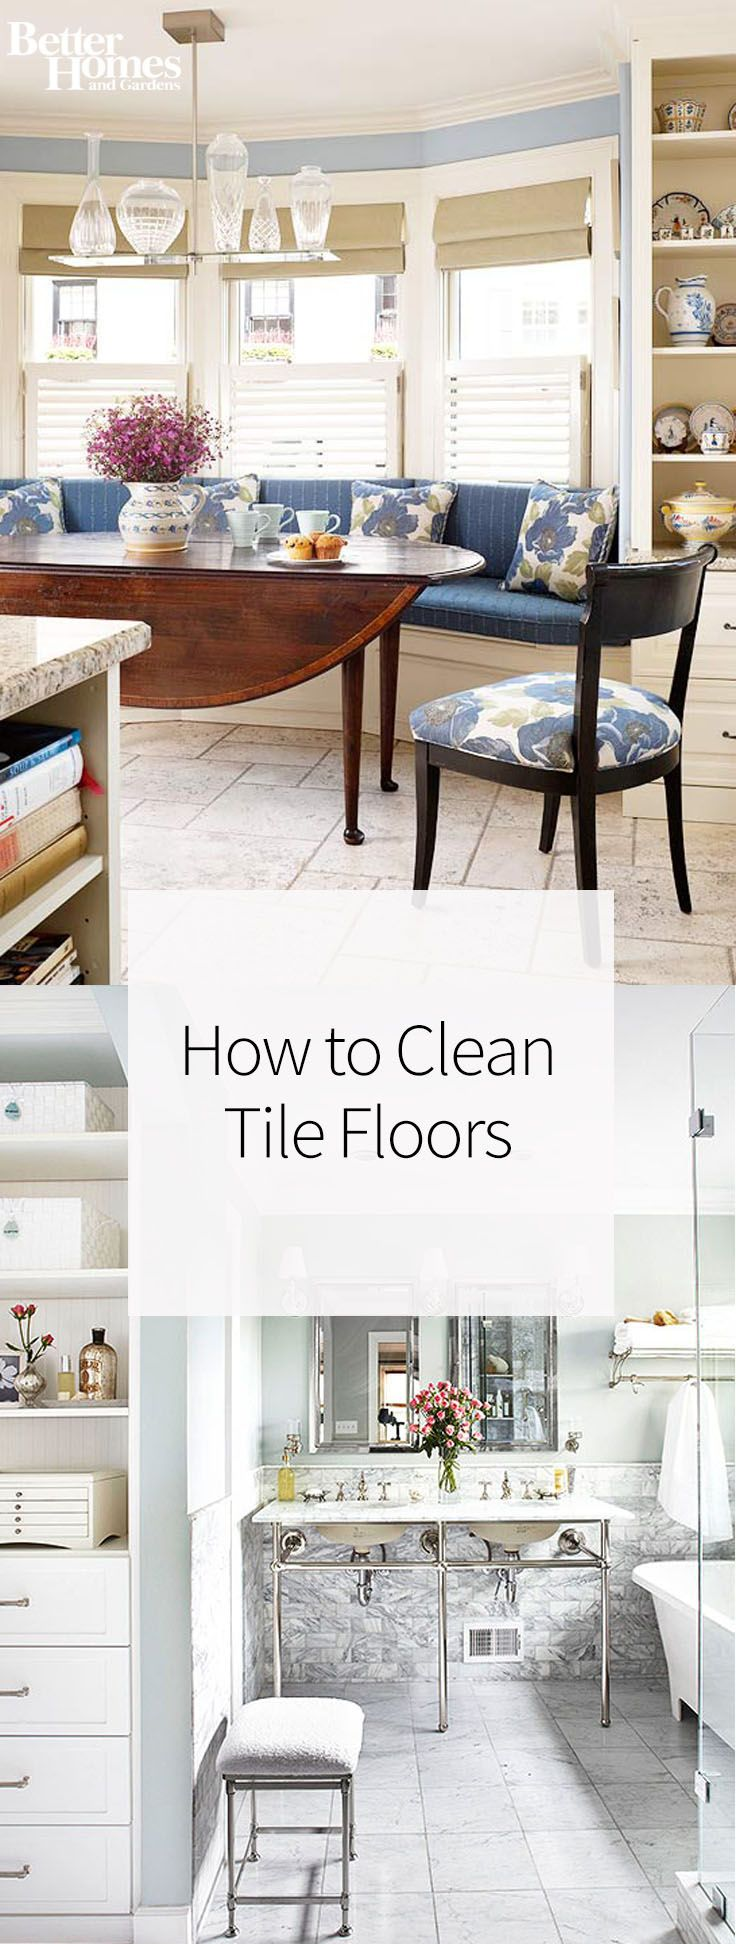 This Is The Best Way To Clean Tile Floors Life Hacks